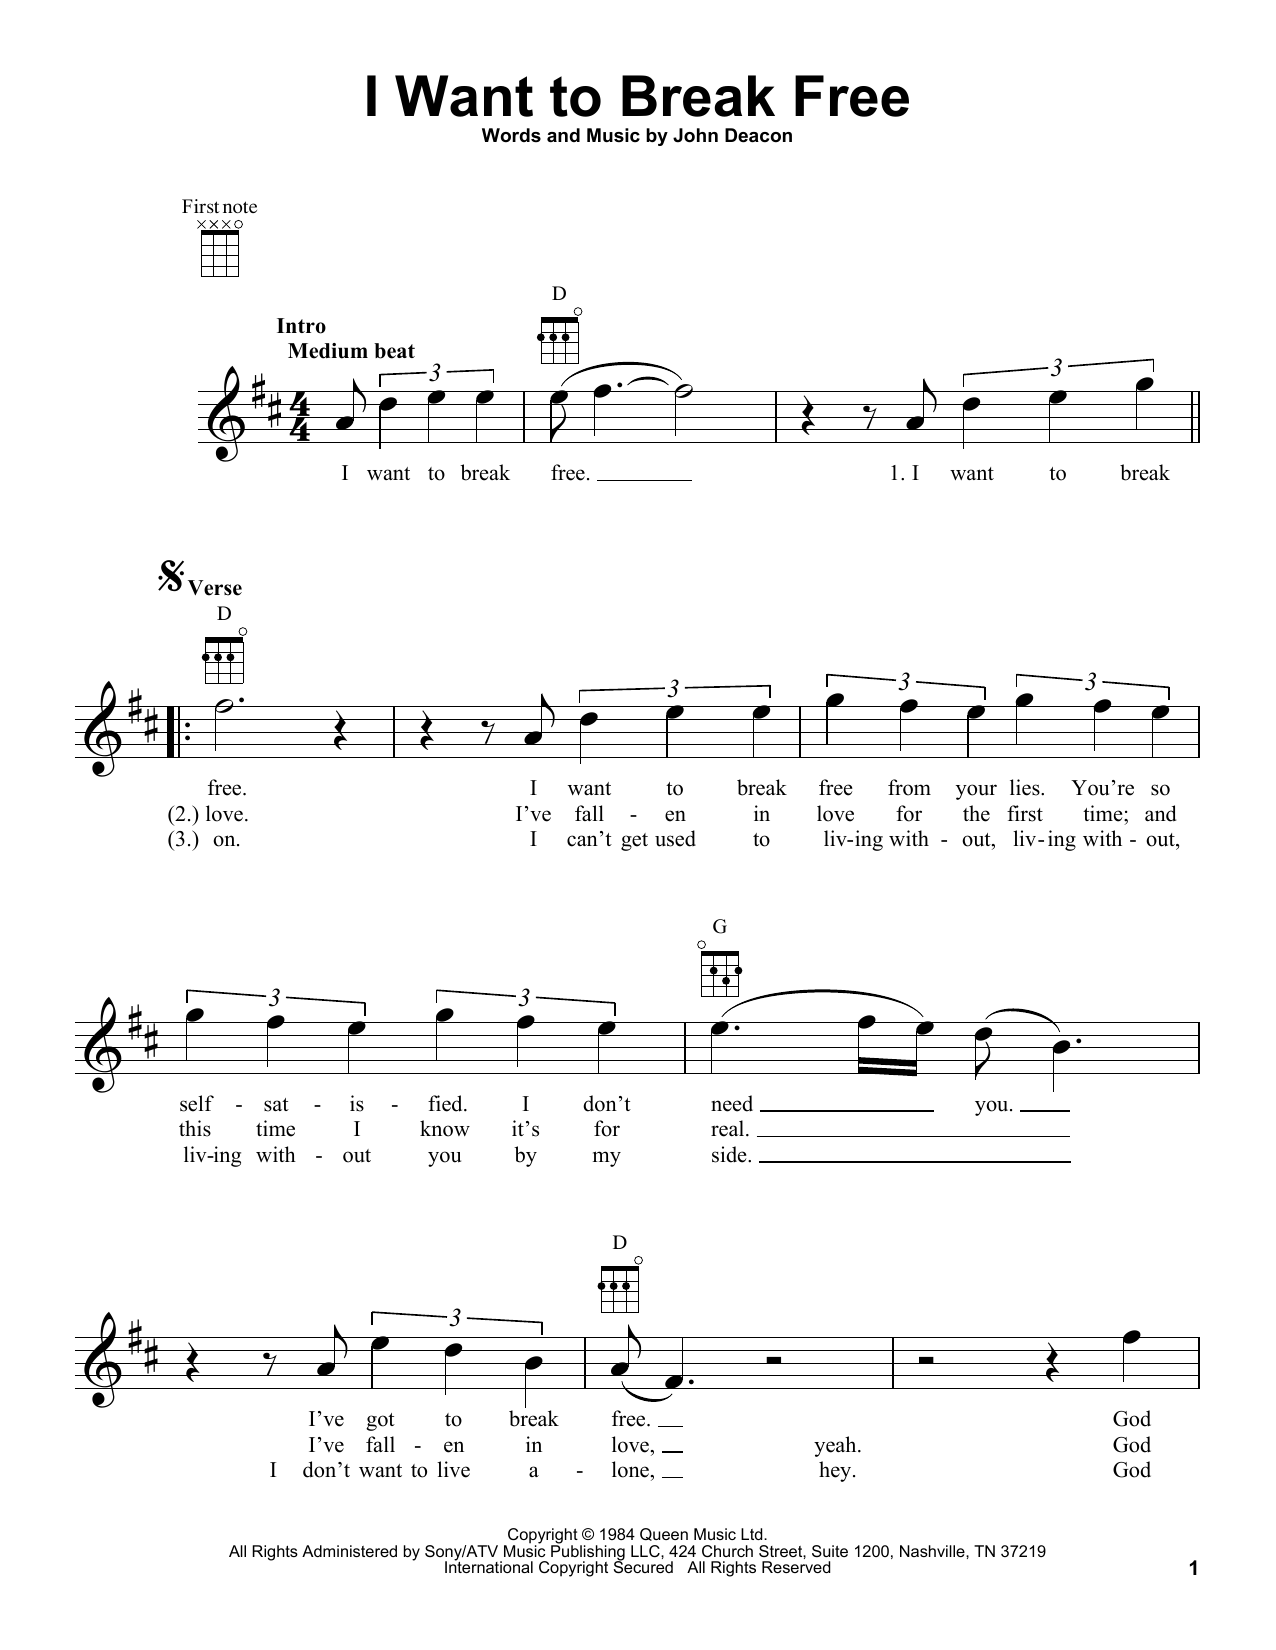 I Want To Break Free Sheet Music Notes, Queen Chords